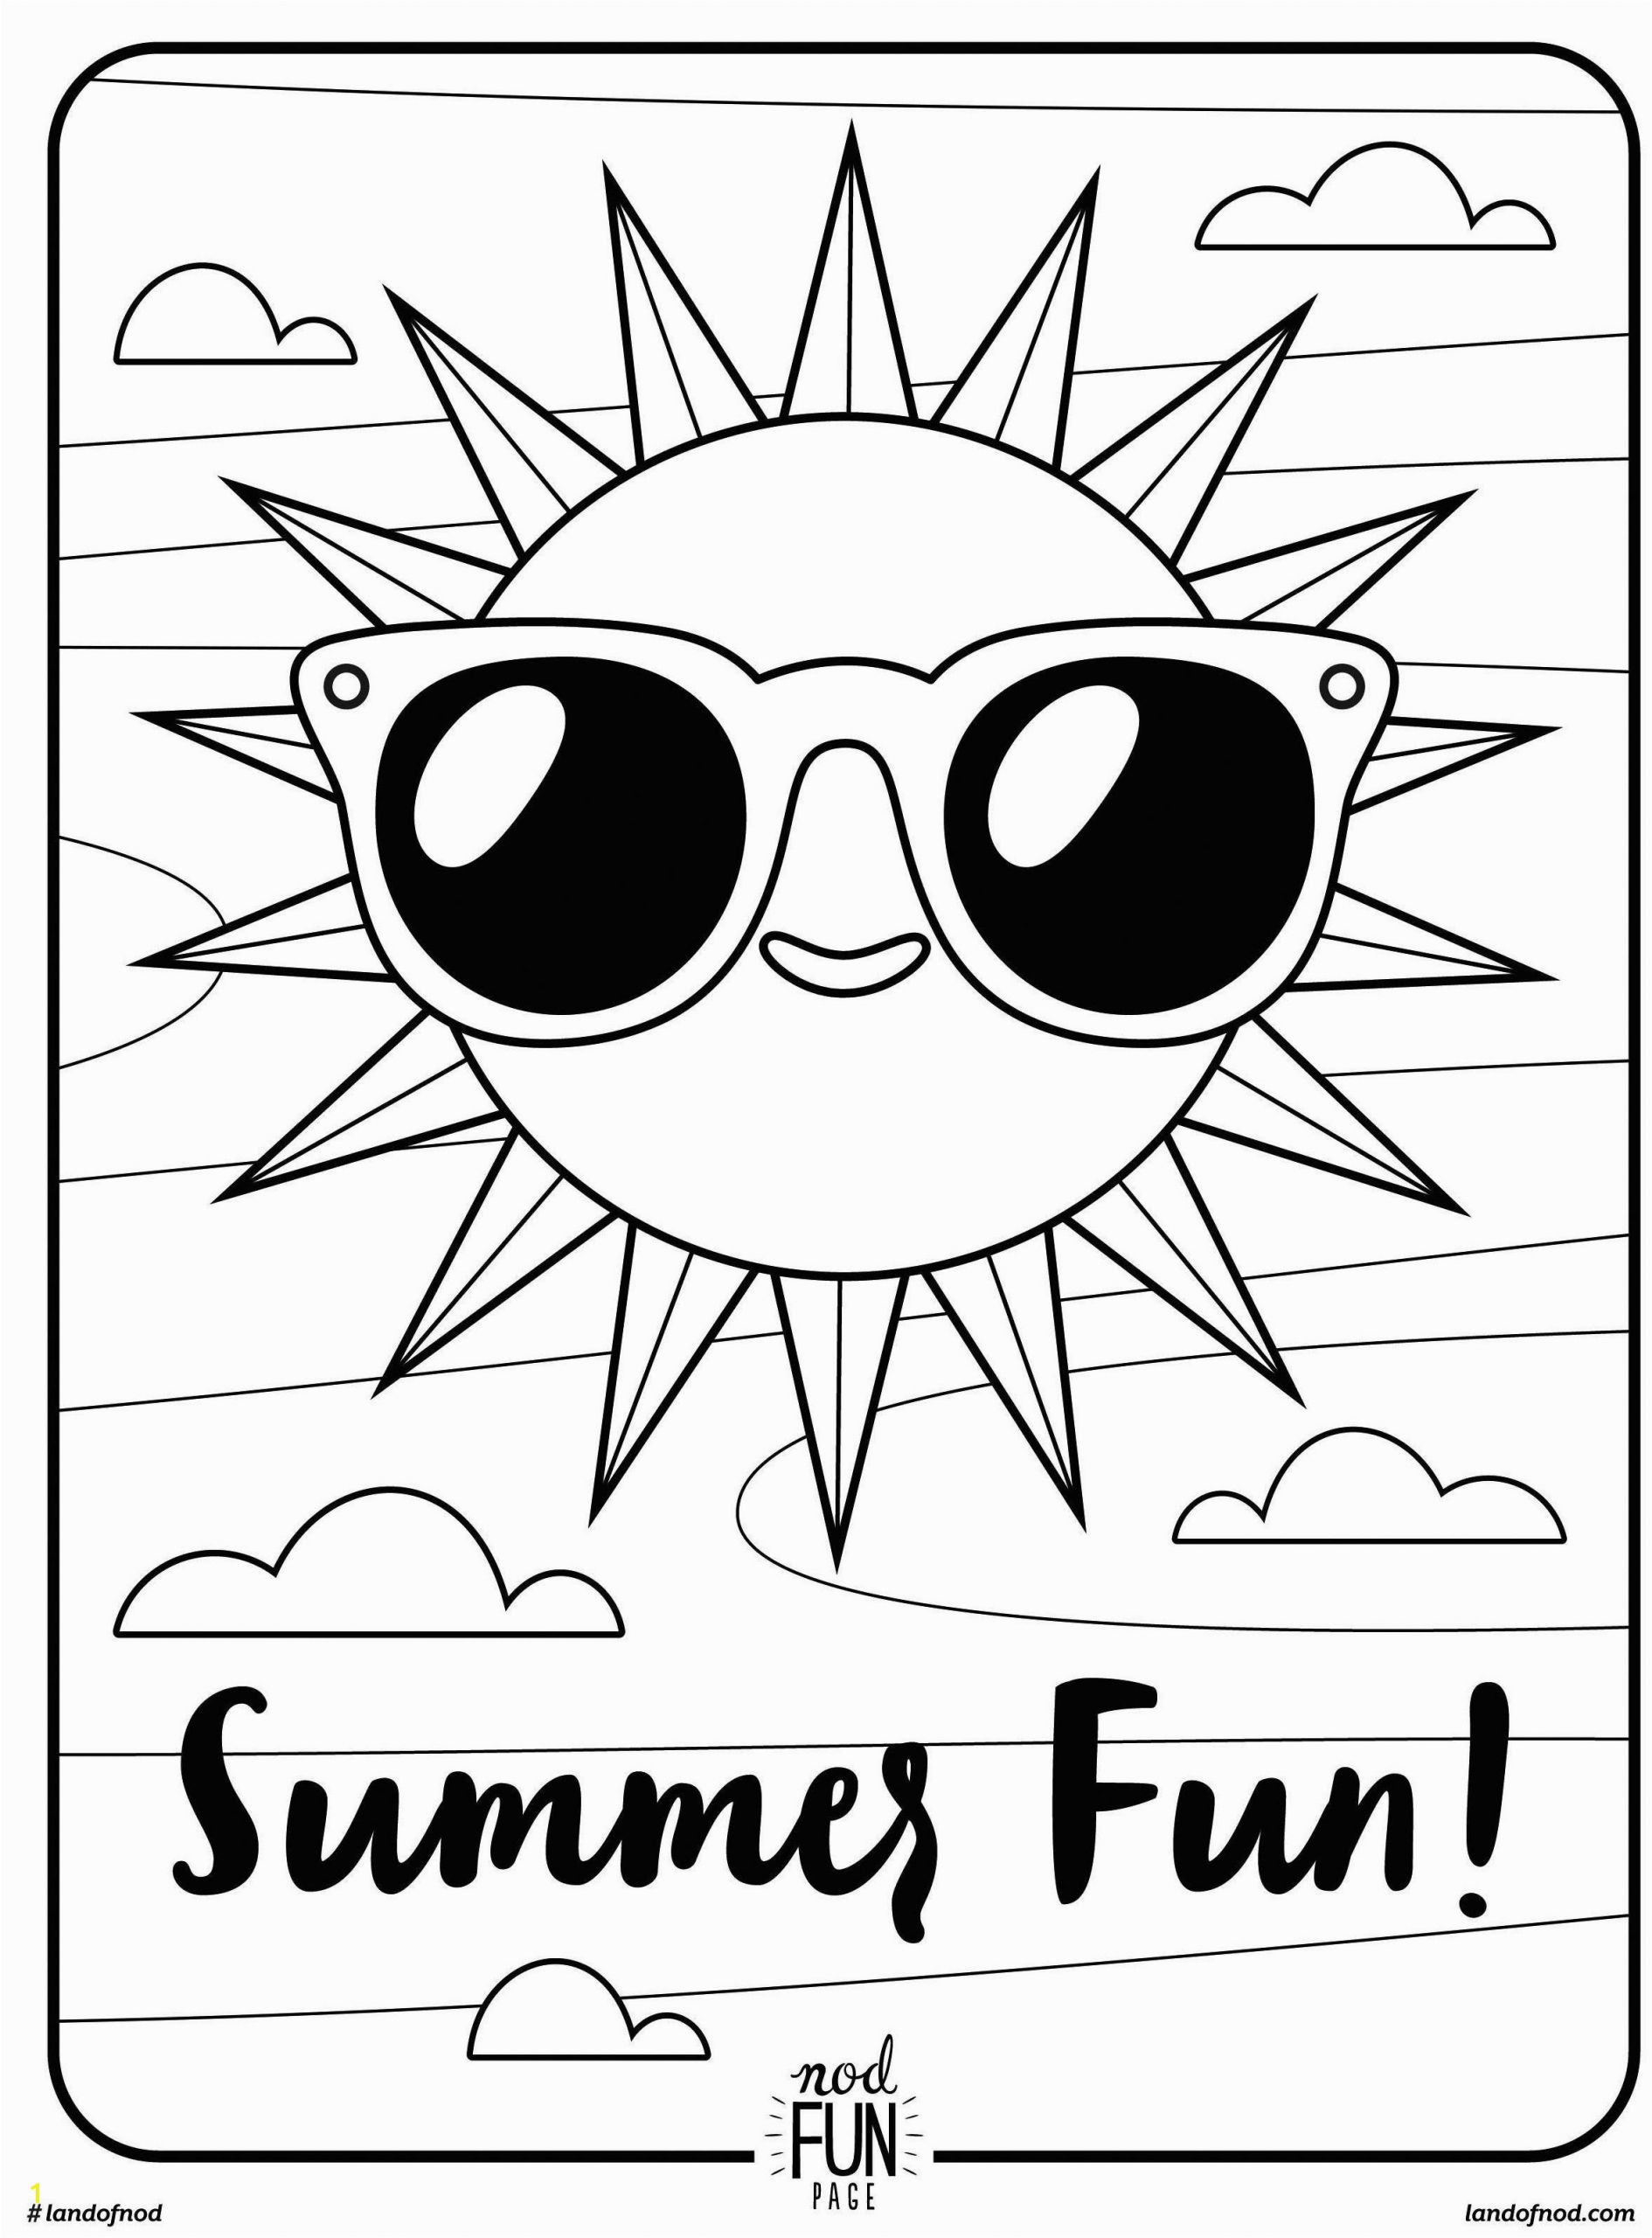 Summer Printable Coloring Pages for Kids Free Printable Coloring Page Summer Fun